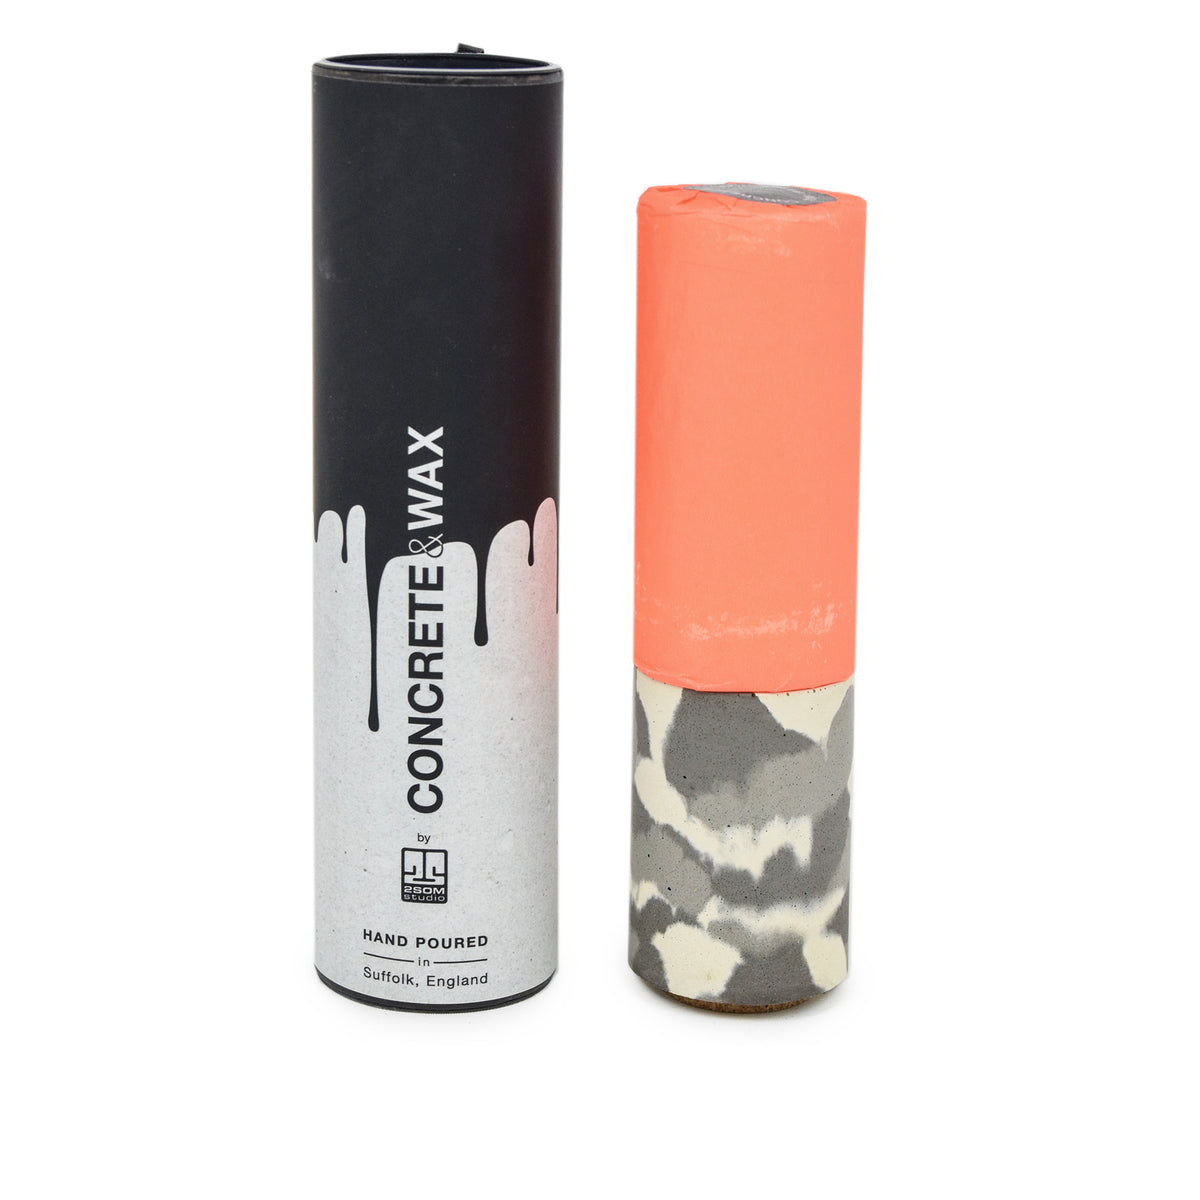 Concrete & Wax Amber Noir Candle And Snow Camo Concrete Holder Slim PACKAGING